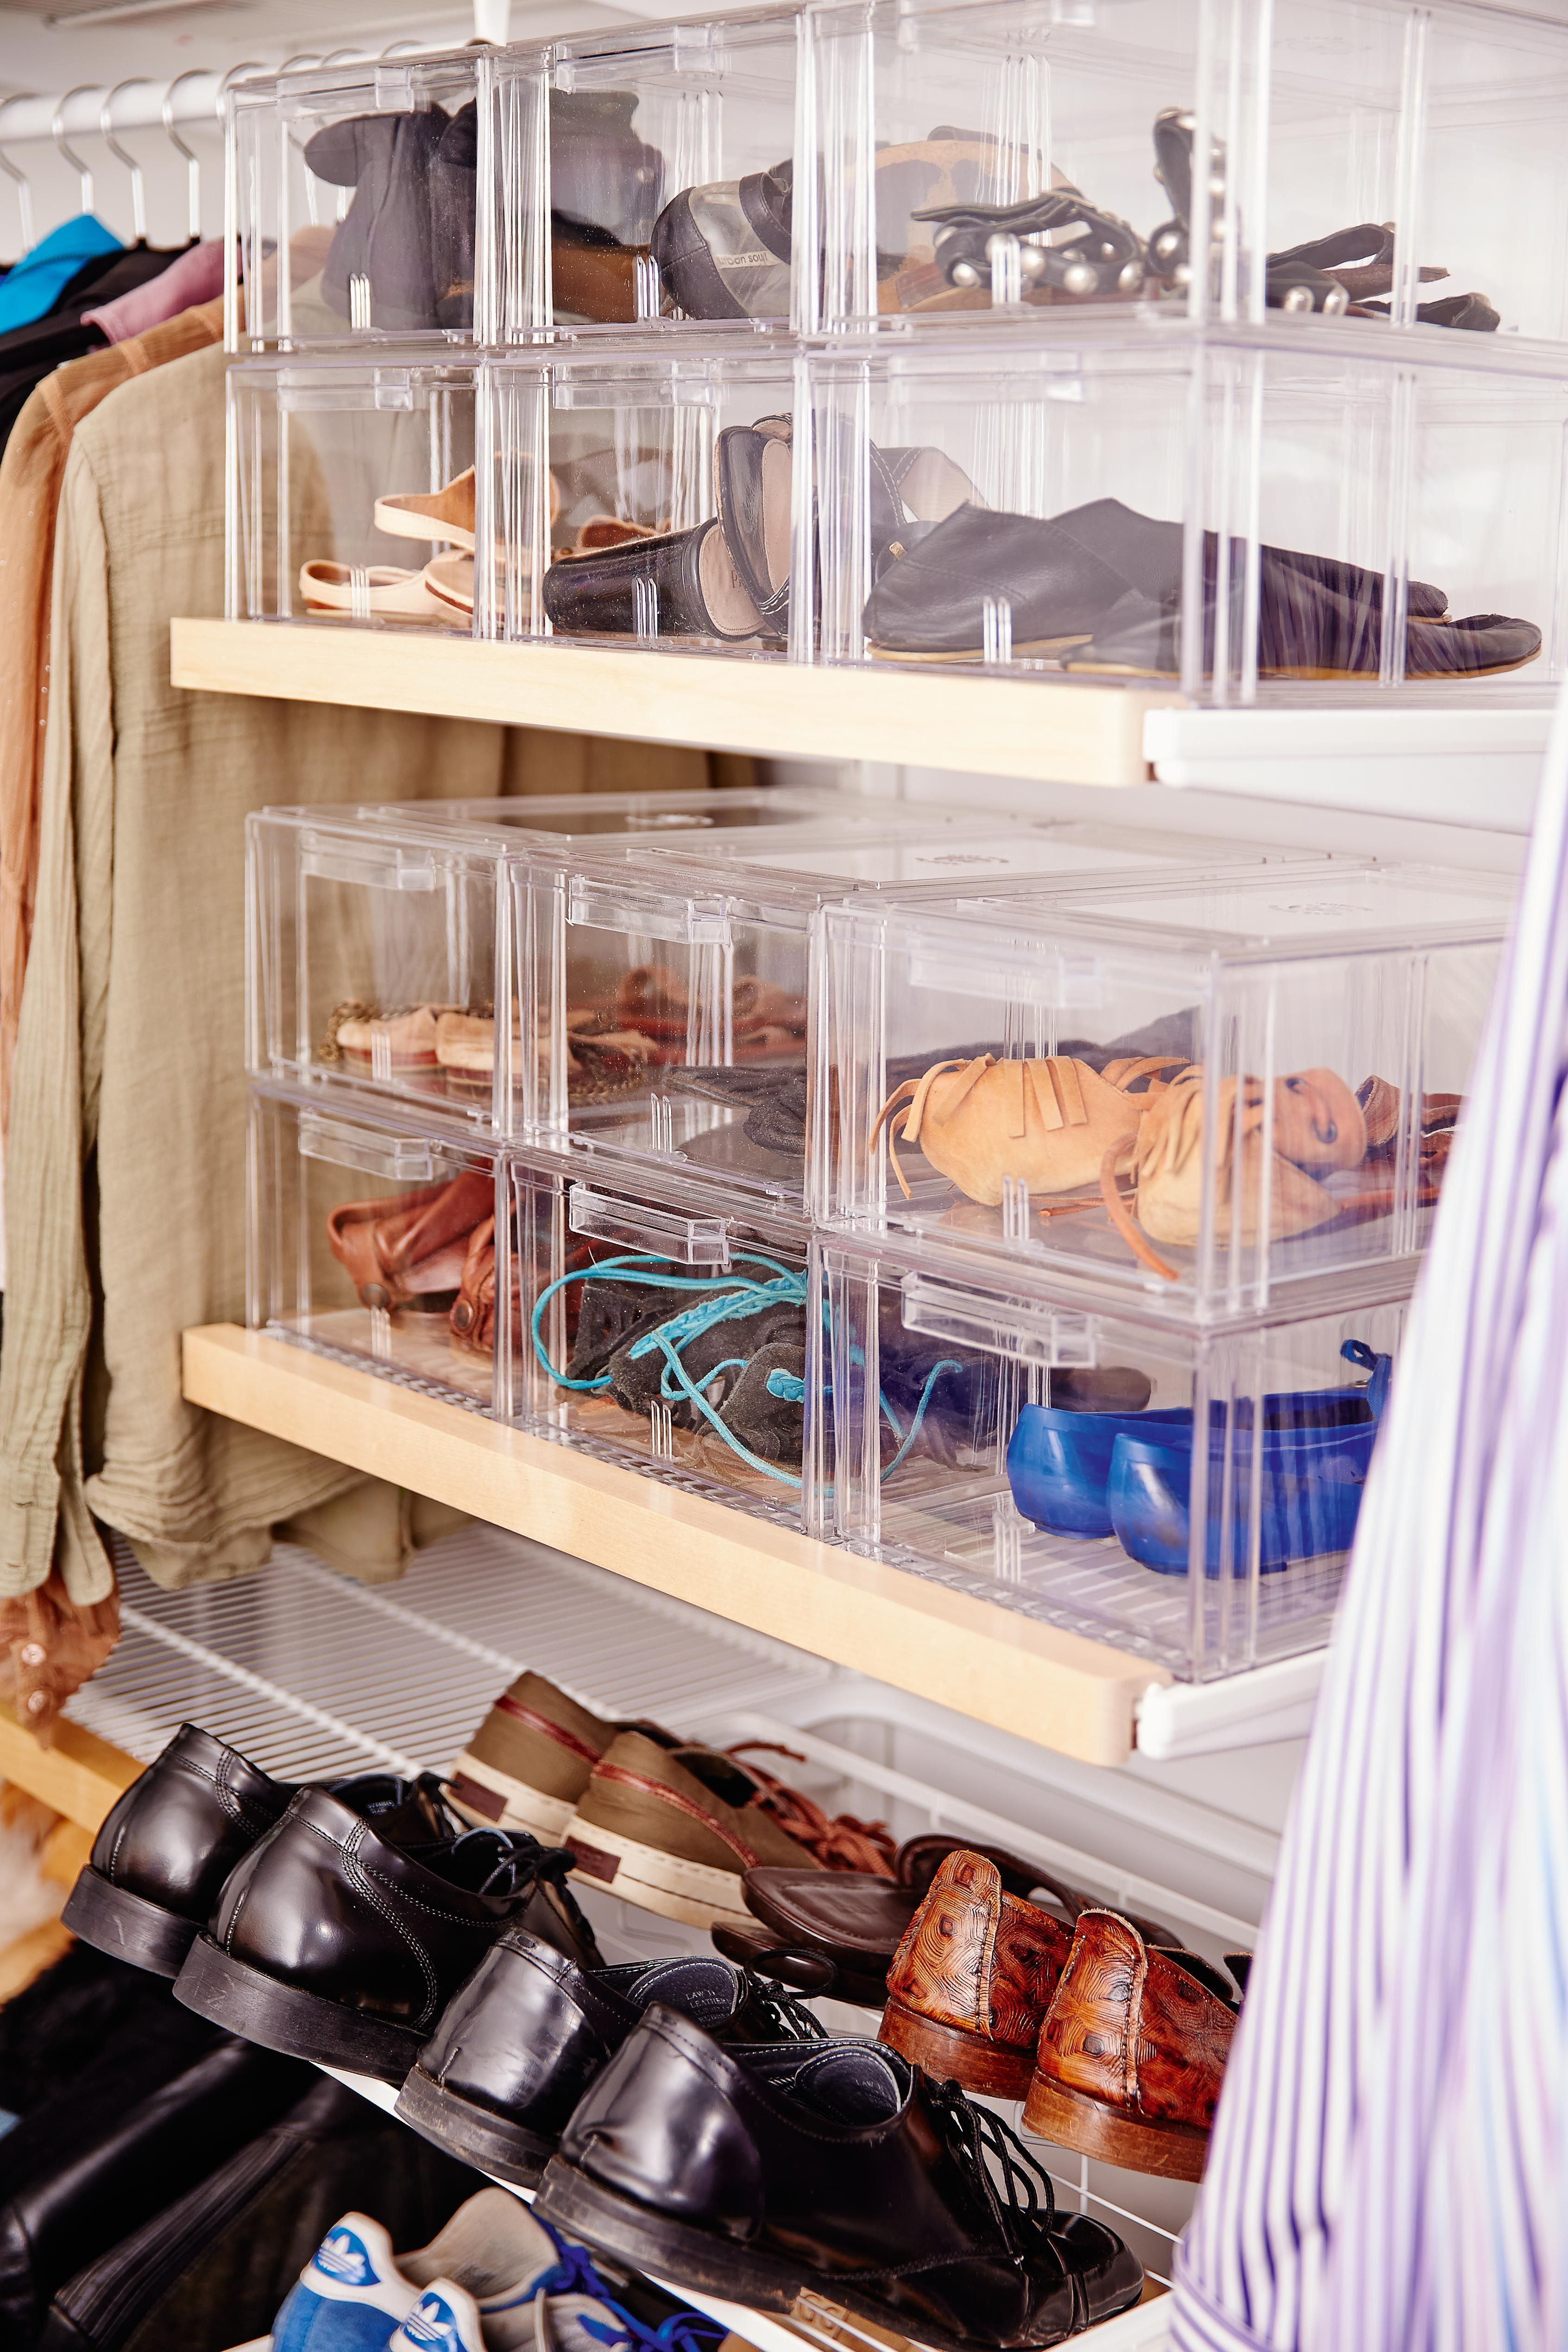 Charming Shoe Storage, Elfa White Gliding Shoe Shelf, Shoes Are Easily Visible And  Accessible. Large Clear Shoe Boxes. Available From Howards Storage World.